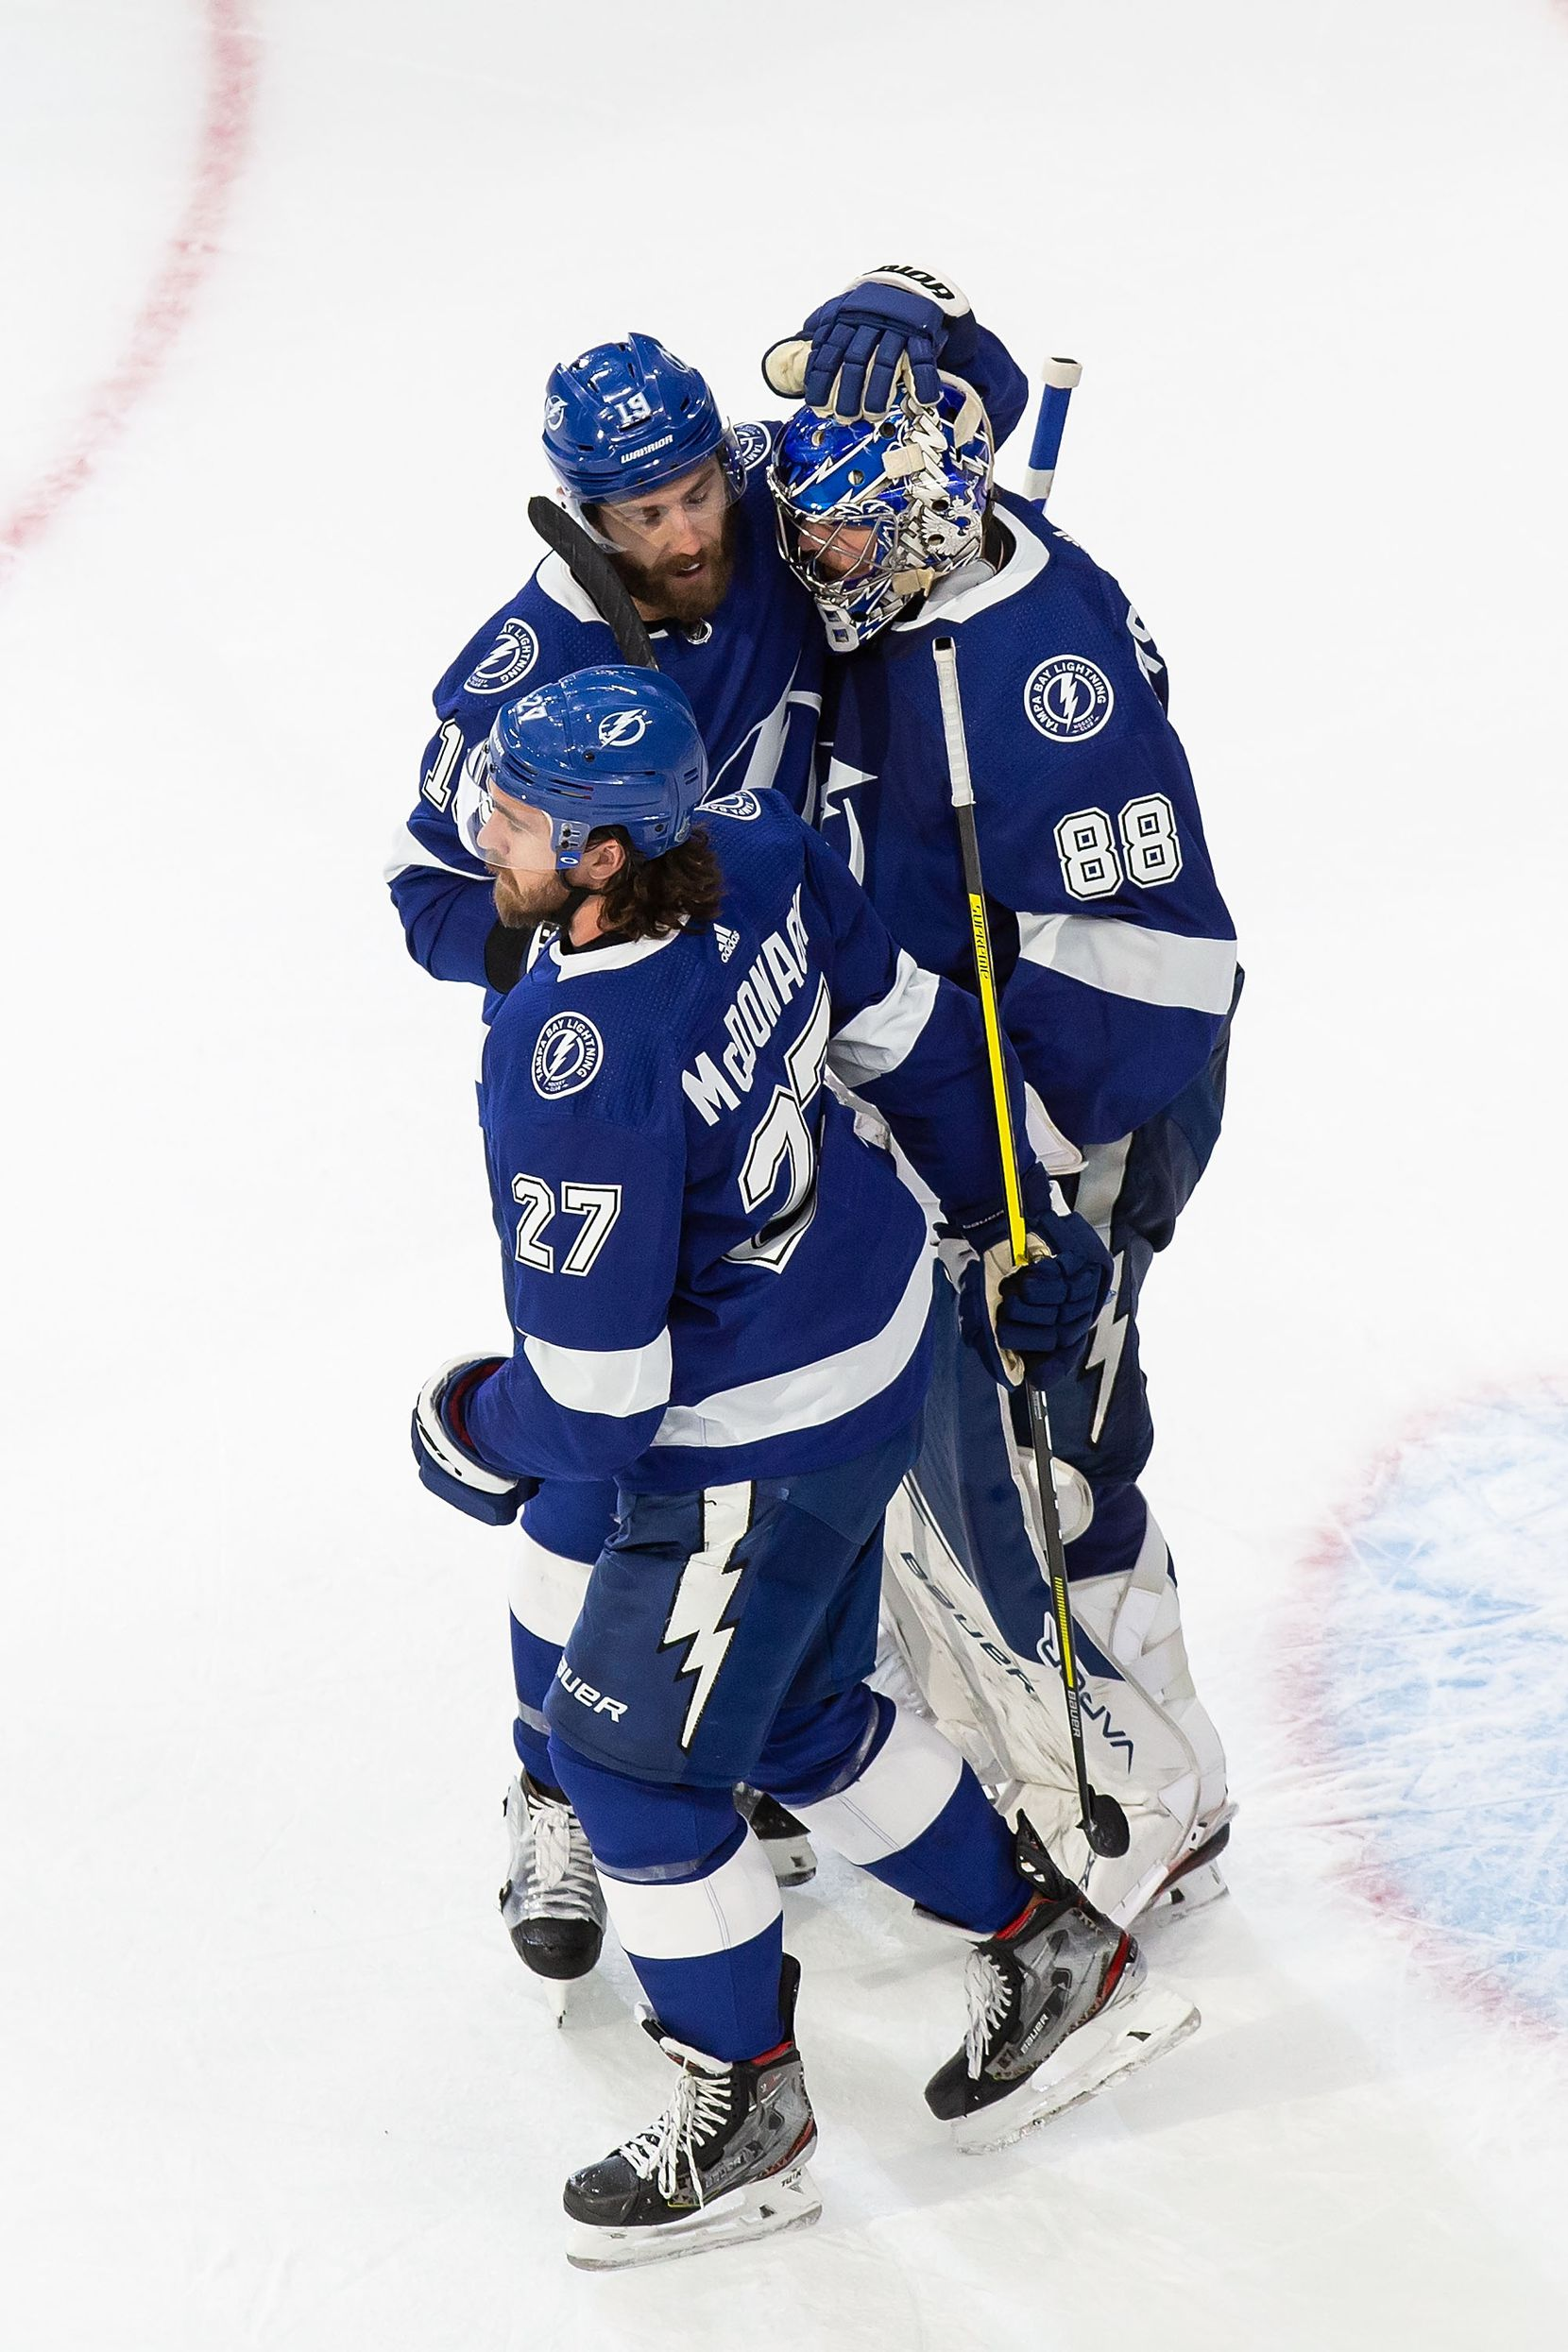 Ryan McDonagh (27), Barclay Goodrow (19) and goaltender Andrei Vasilevskiy (88) of the Tampa Bay Lightning celebrate their victory against the Dallas Stars during Game Two of the Stanley Cup Final at Rogers Place in Edmonton, Alberta, Canada on Monday, September 21, 2020. (Codie McLachlan/Special Contributor)